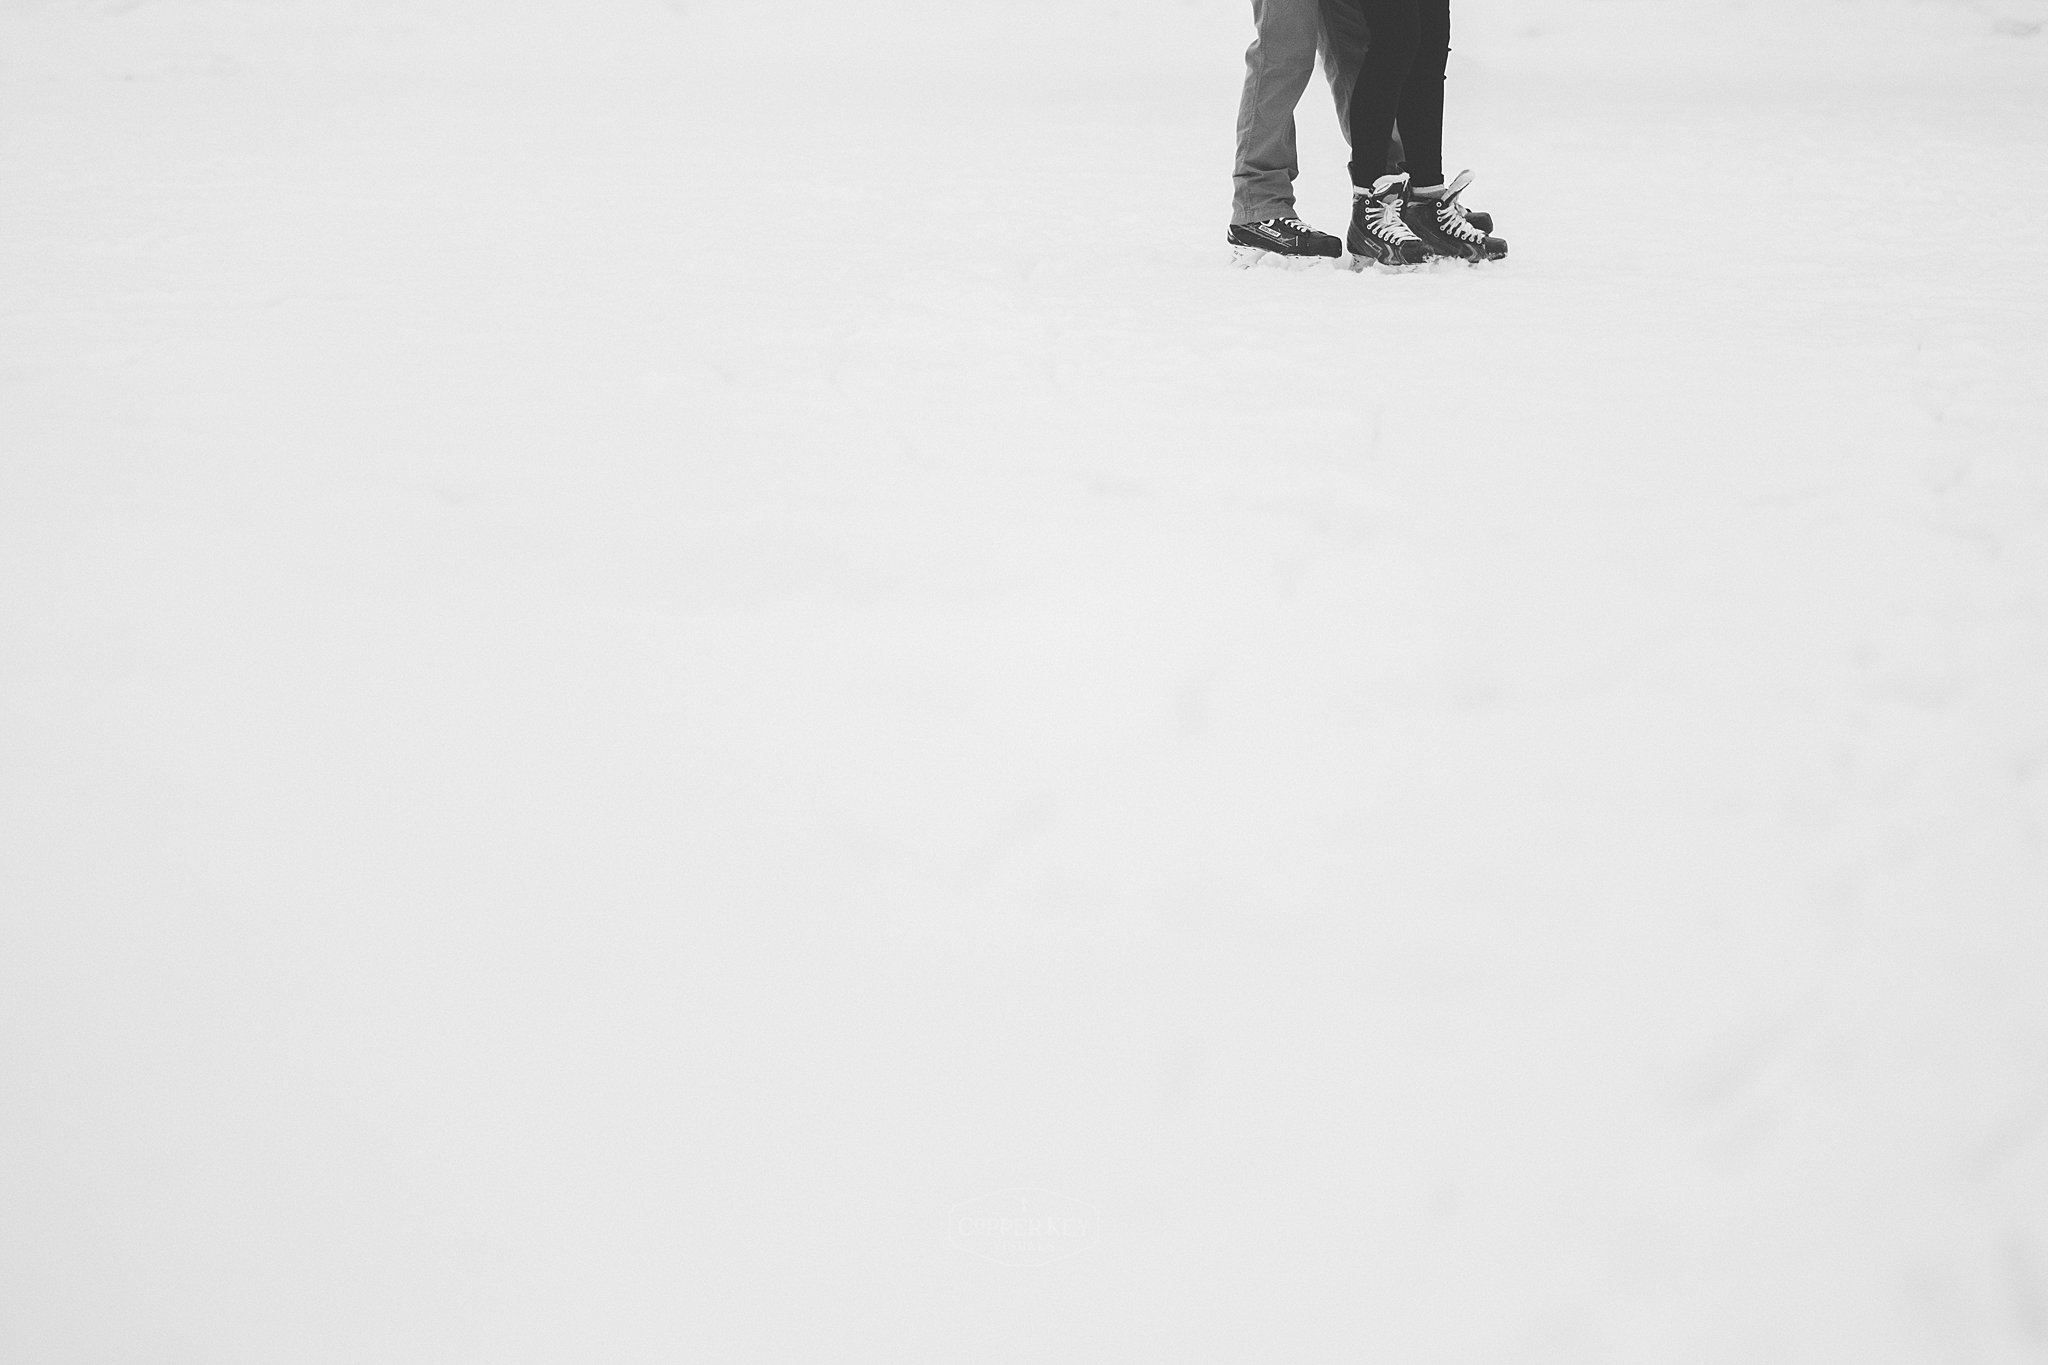 Copper Key Visuals Wisconsin Ice Skating Engagement Session-7.jpg